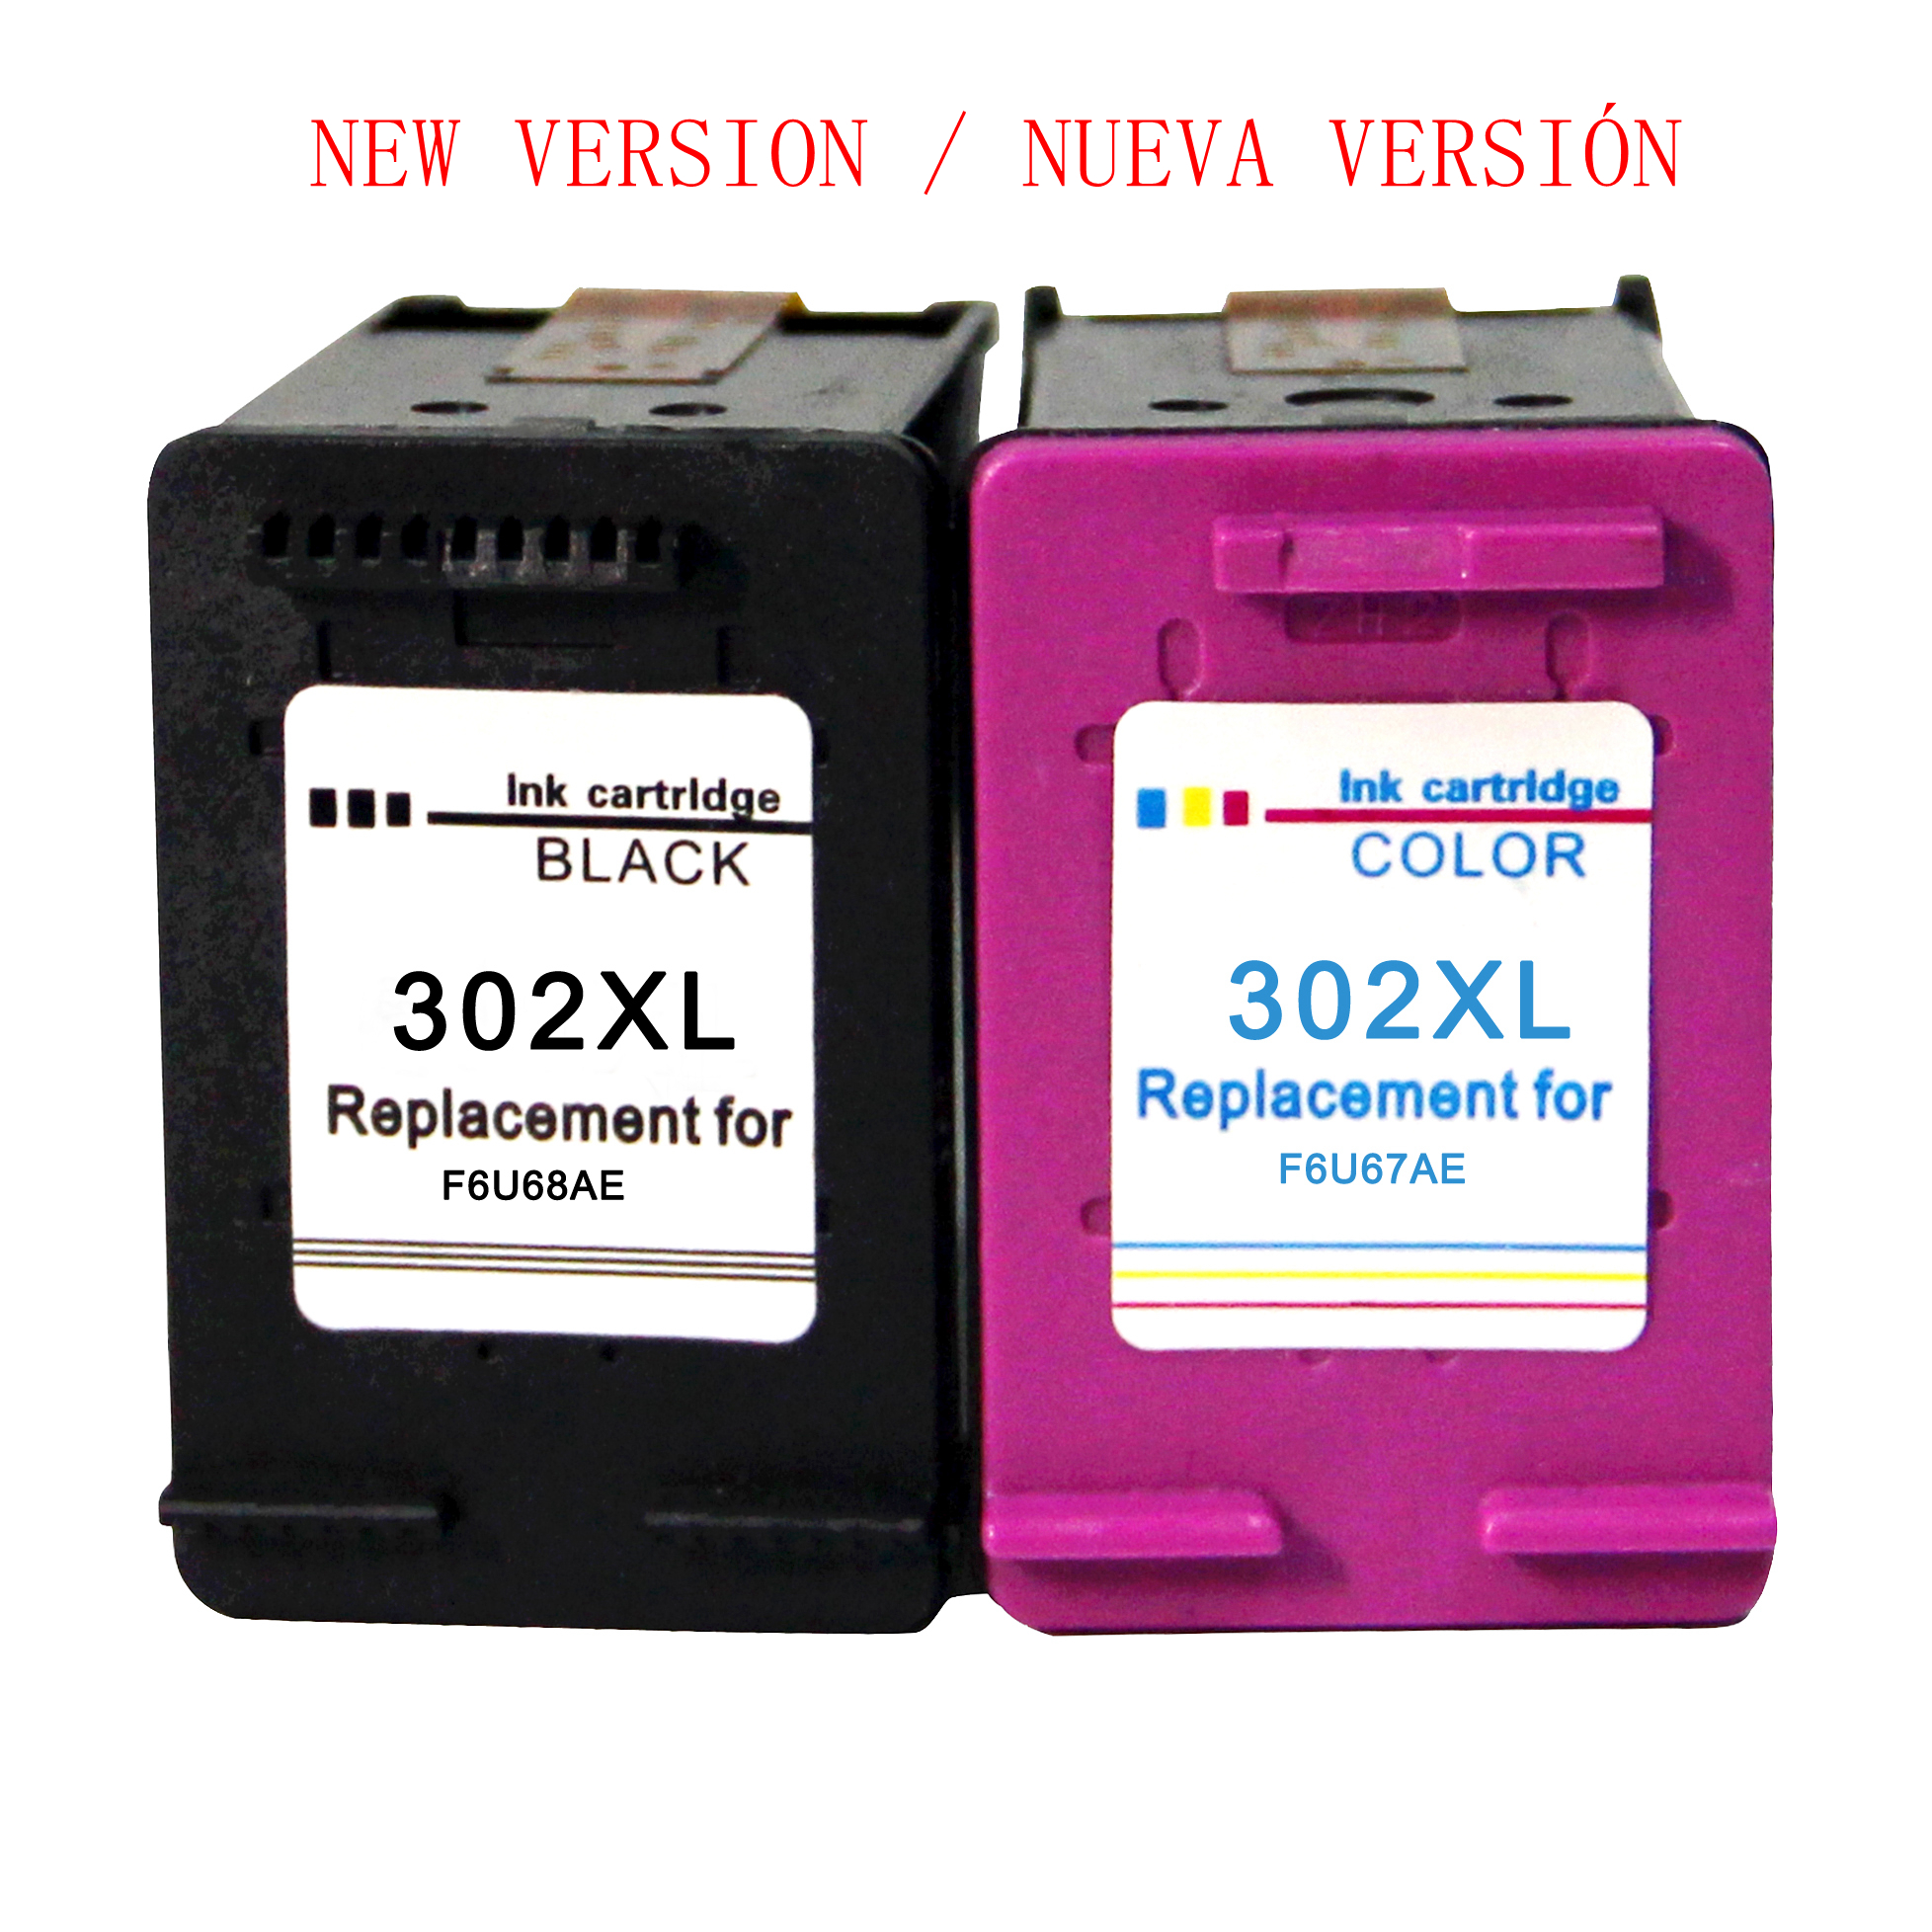 Compatibile 302XL Cartucce di inchiostro per HP 302 per HP OfficeJet 5220 5222 5230 5232 3831 3833 Envy 4520 deskJet 4524 3639